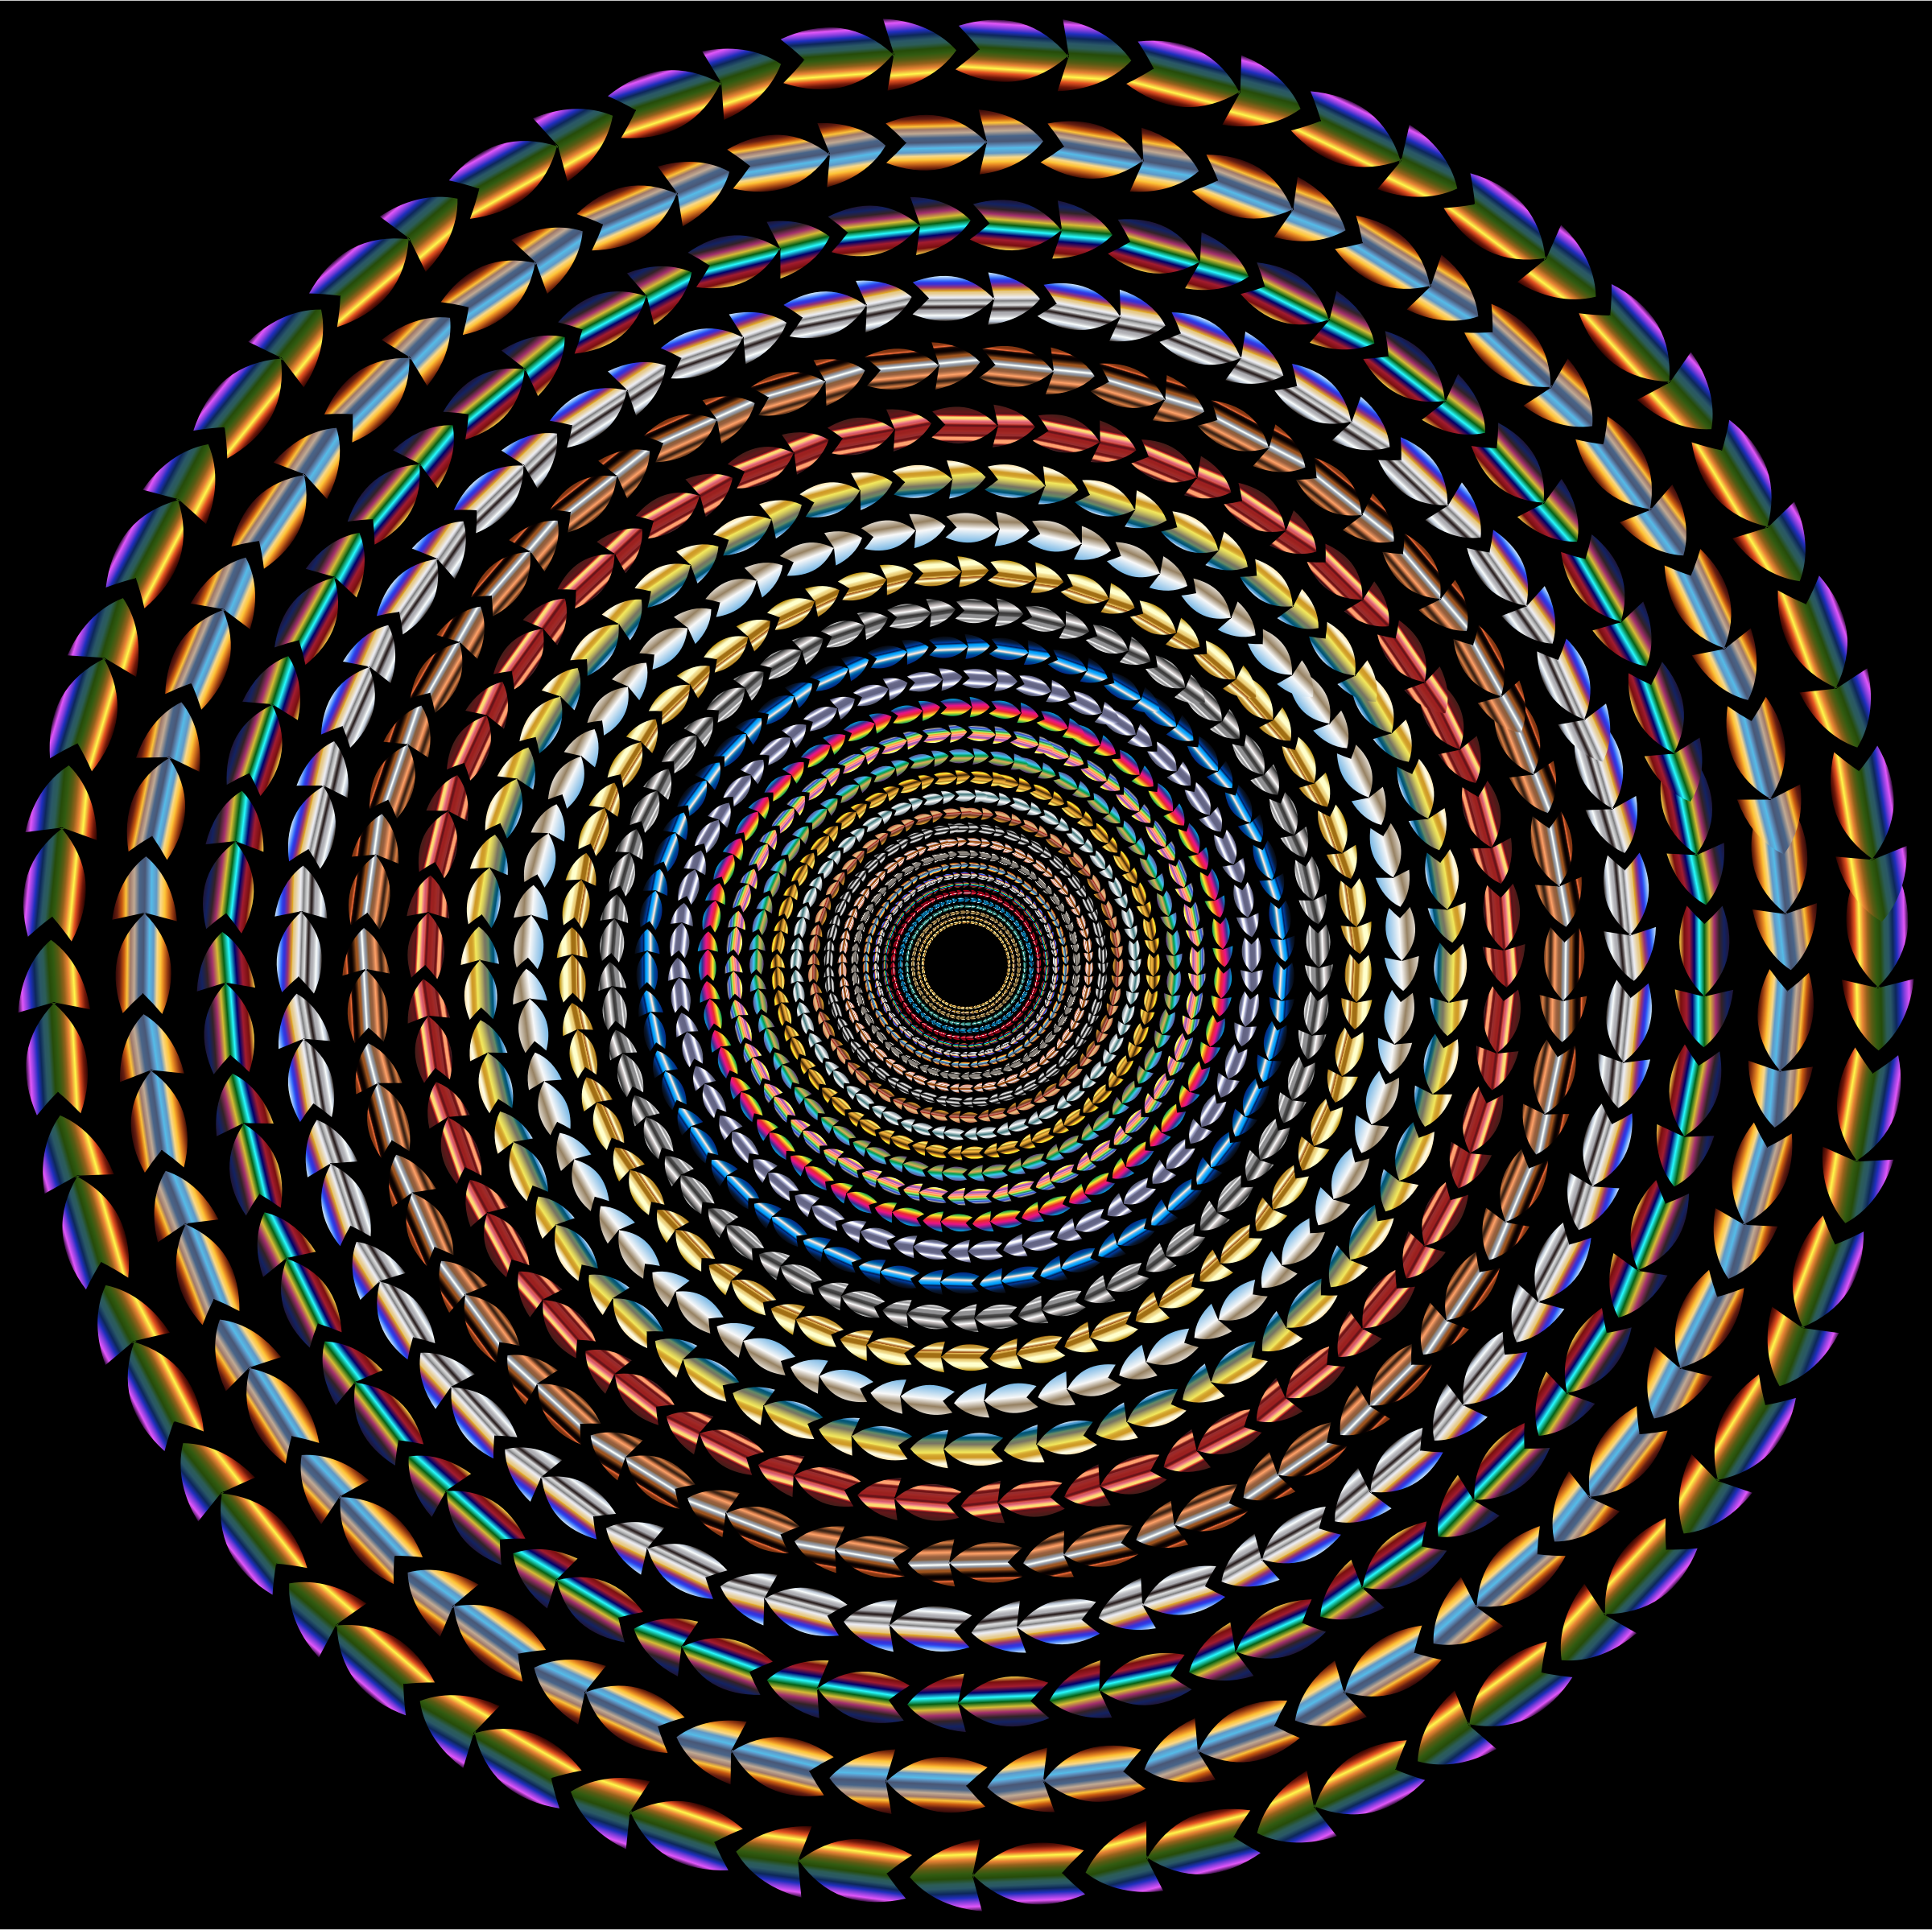 Polychromatic Colorful Direction Circle Vortex by GDJ